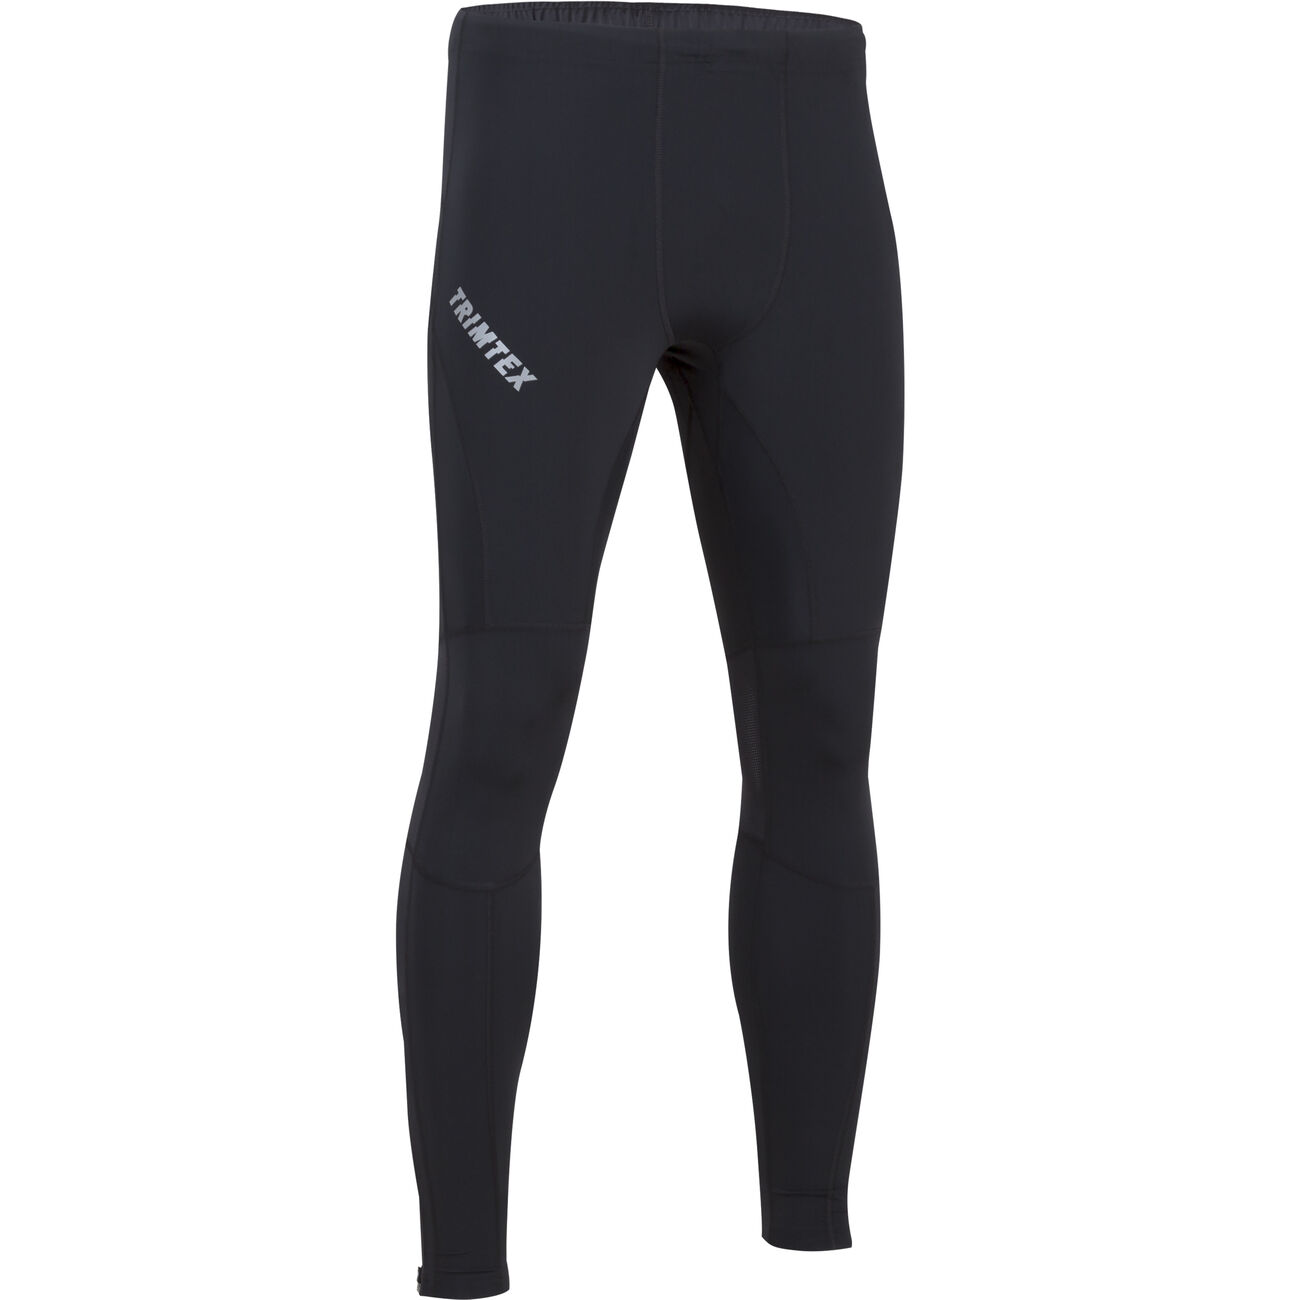 Compress tights herre - Revised